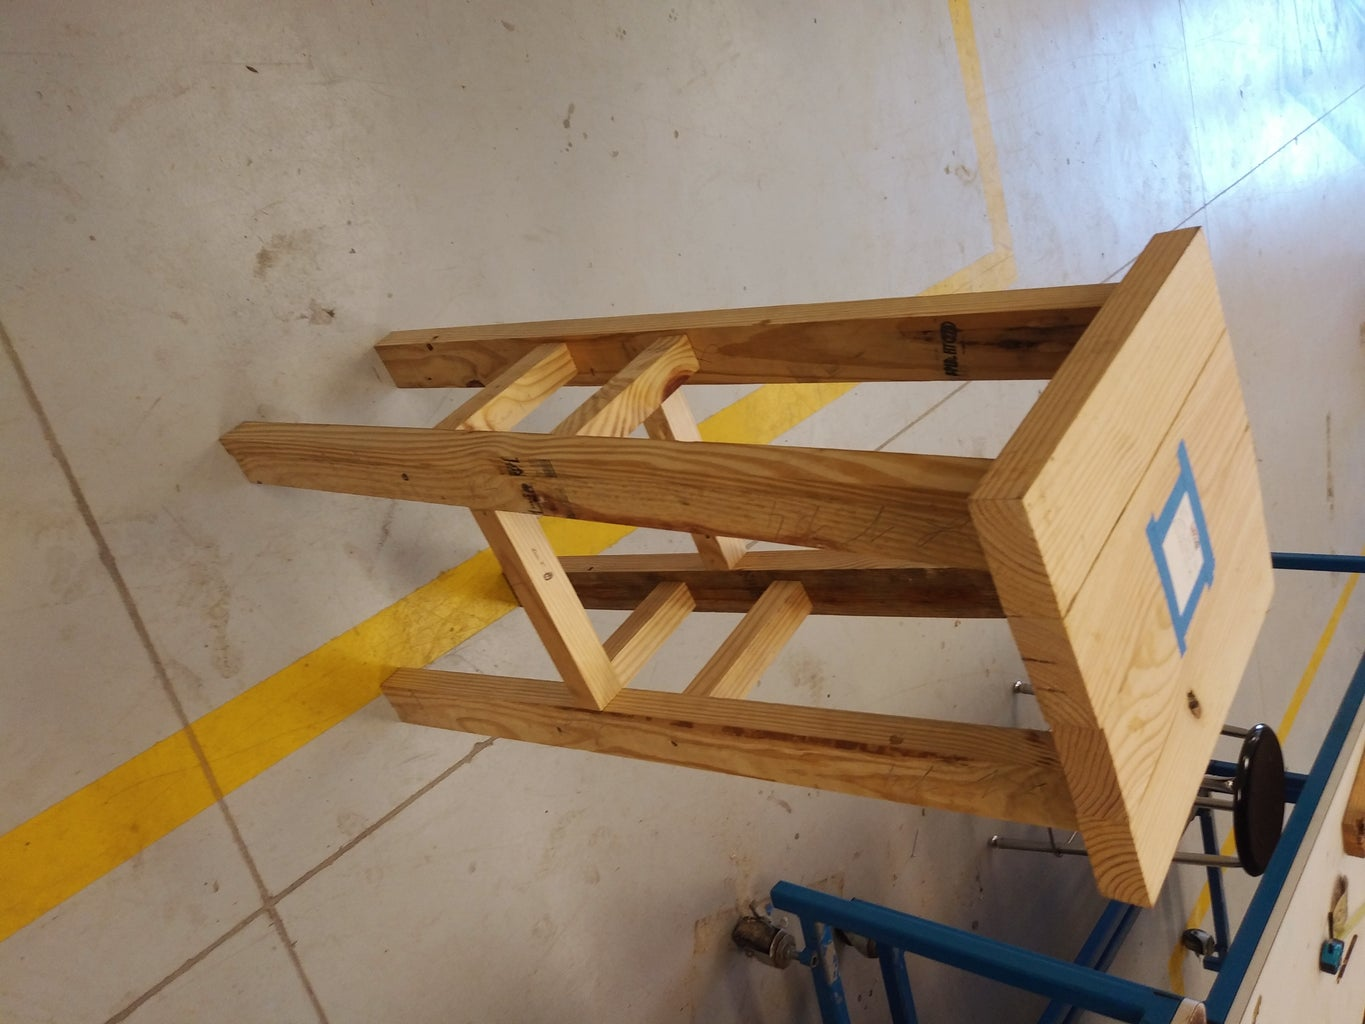 How to Build a Stool Out of 2x4's